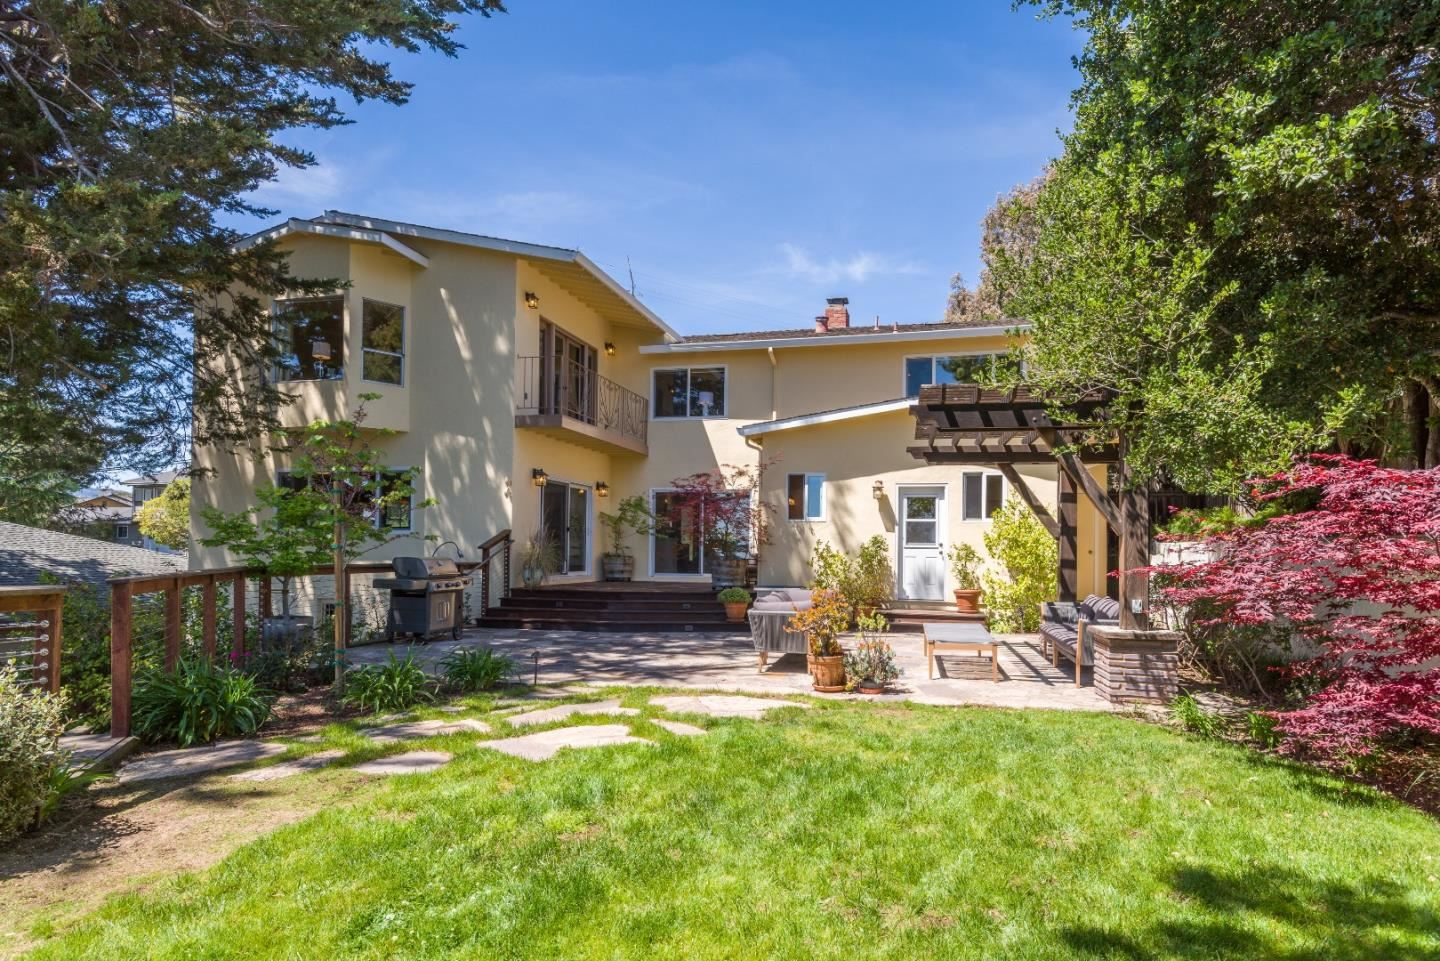 Photo for 565 SOUTH Road, BELMONT, CA 94002 (MLS # ML81841687)